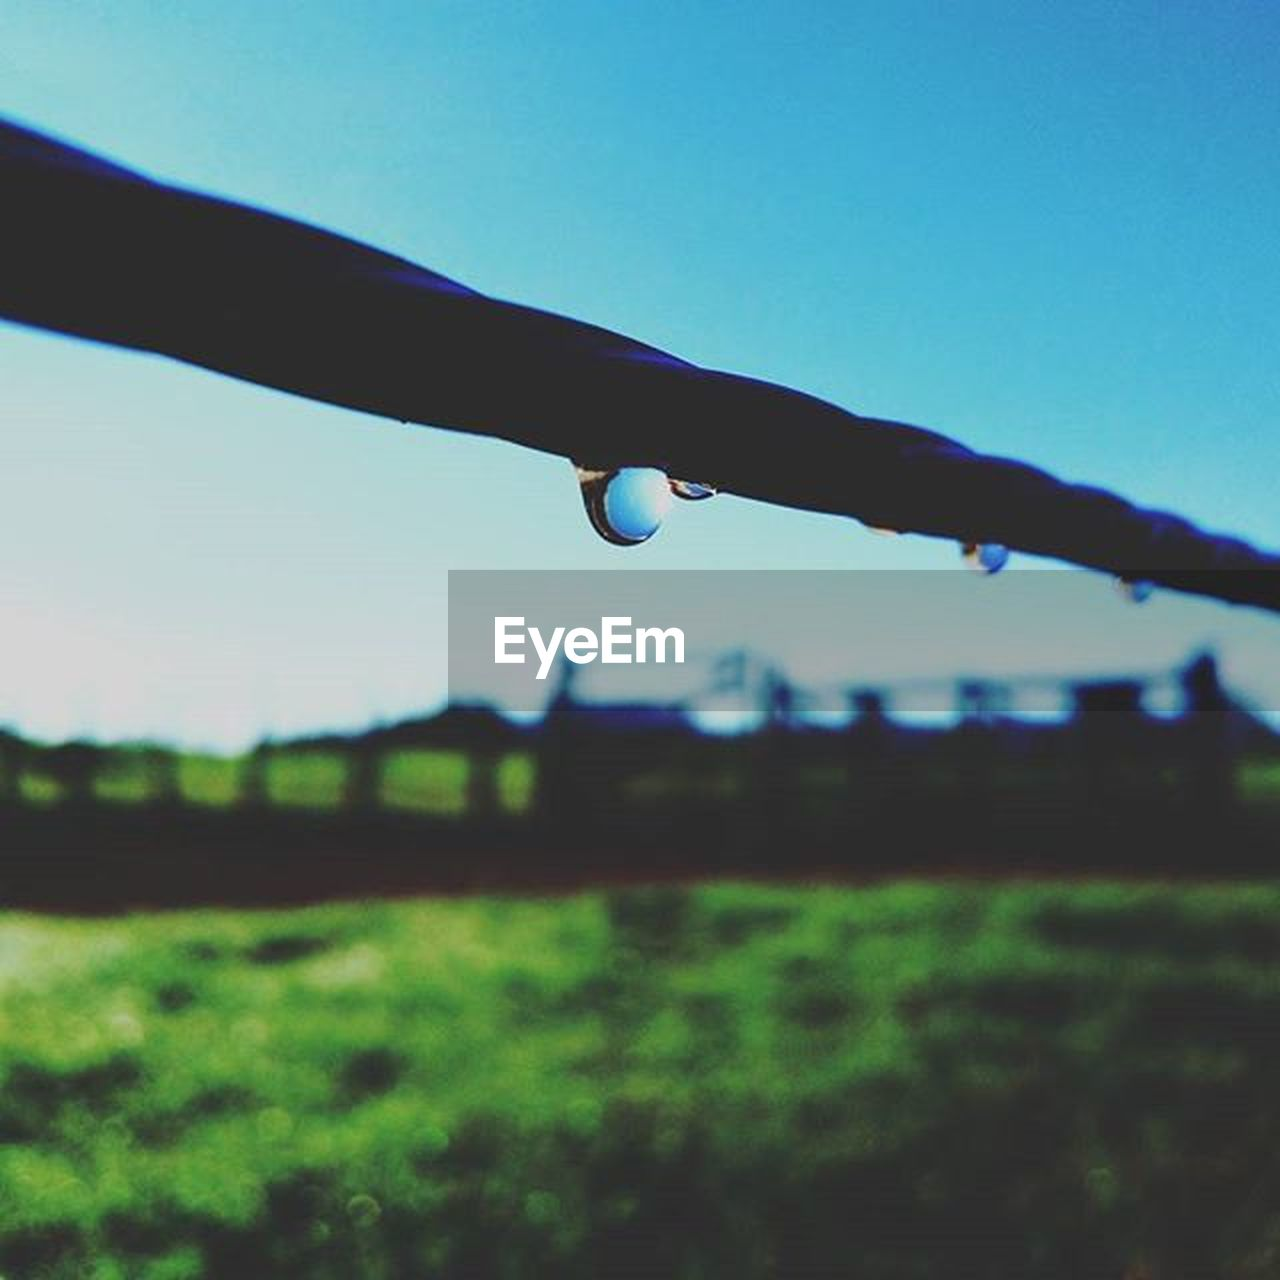 drop, focus on foreground, day, outdoors, nature, clear sky, grass, no people, landscape, sky, close-up, water, beauty in nature, fragility, dripping